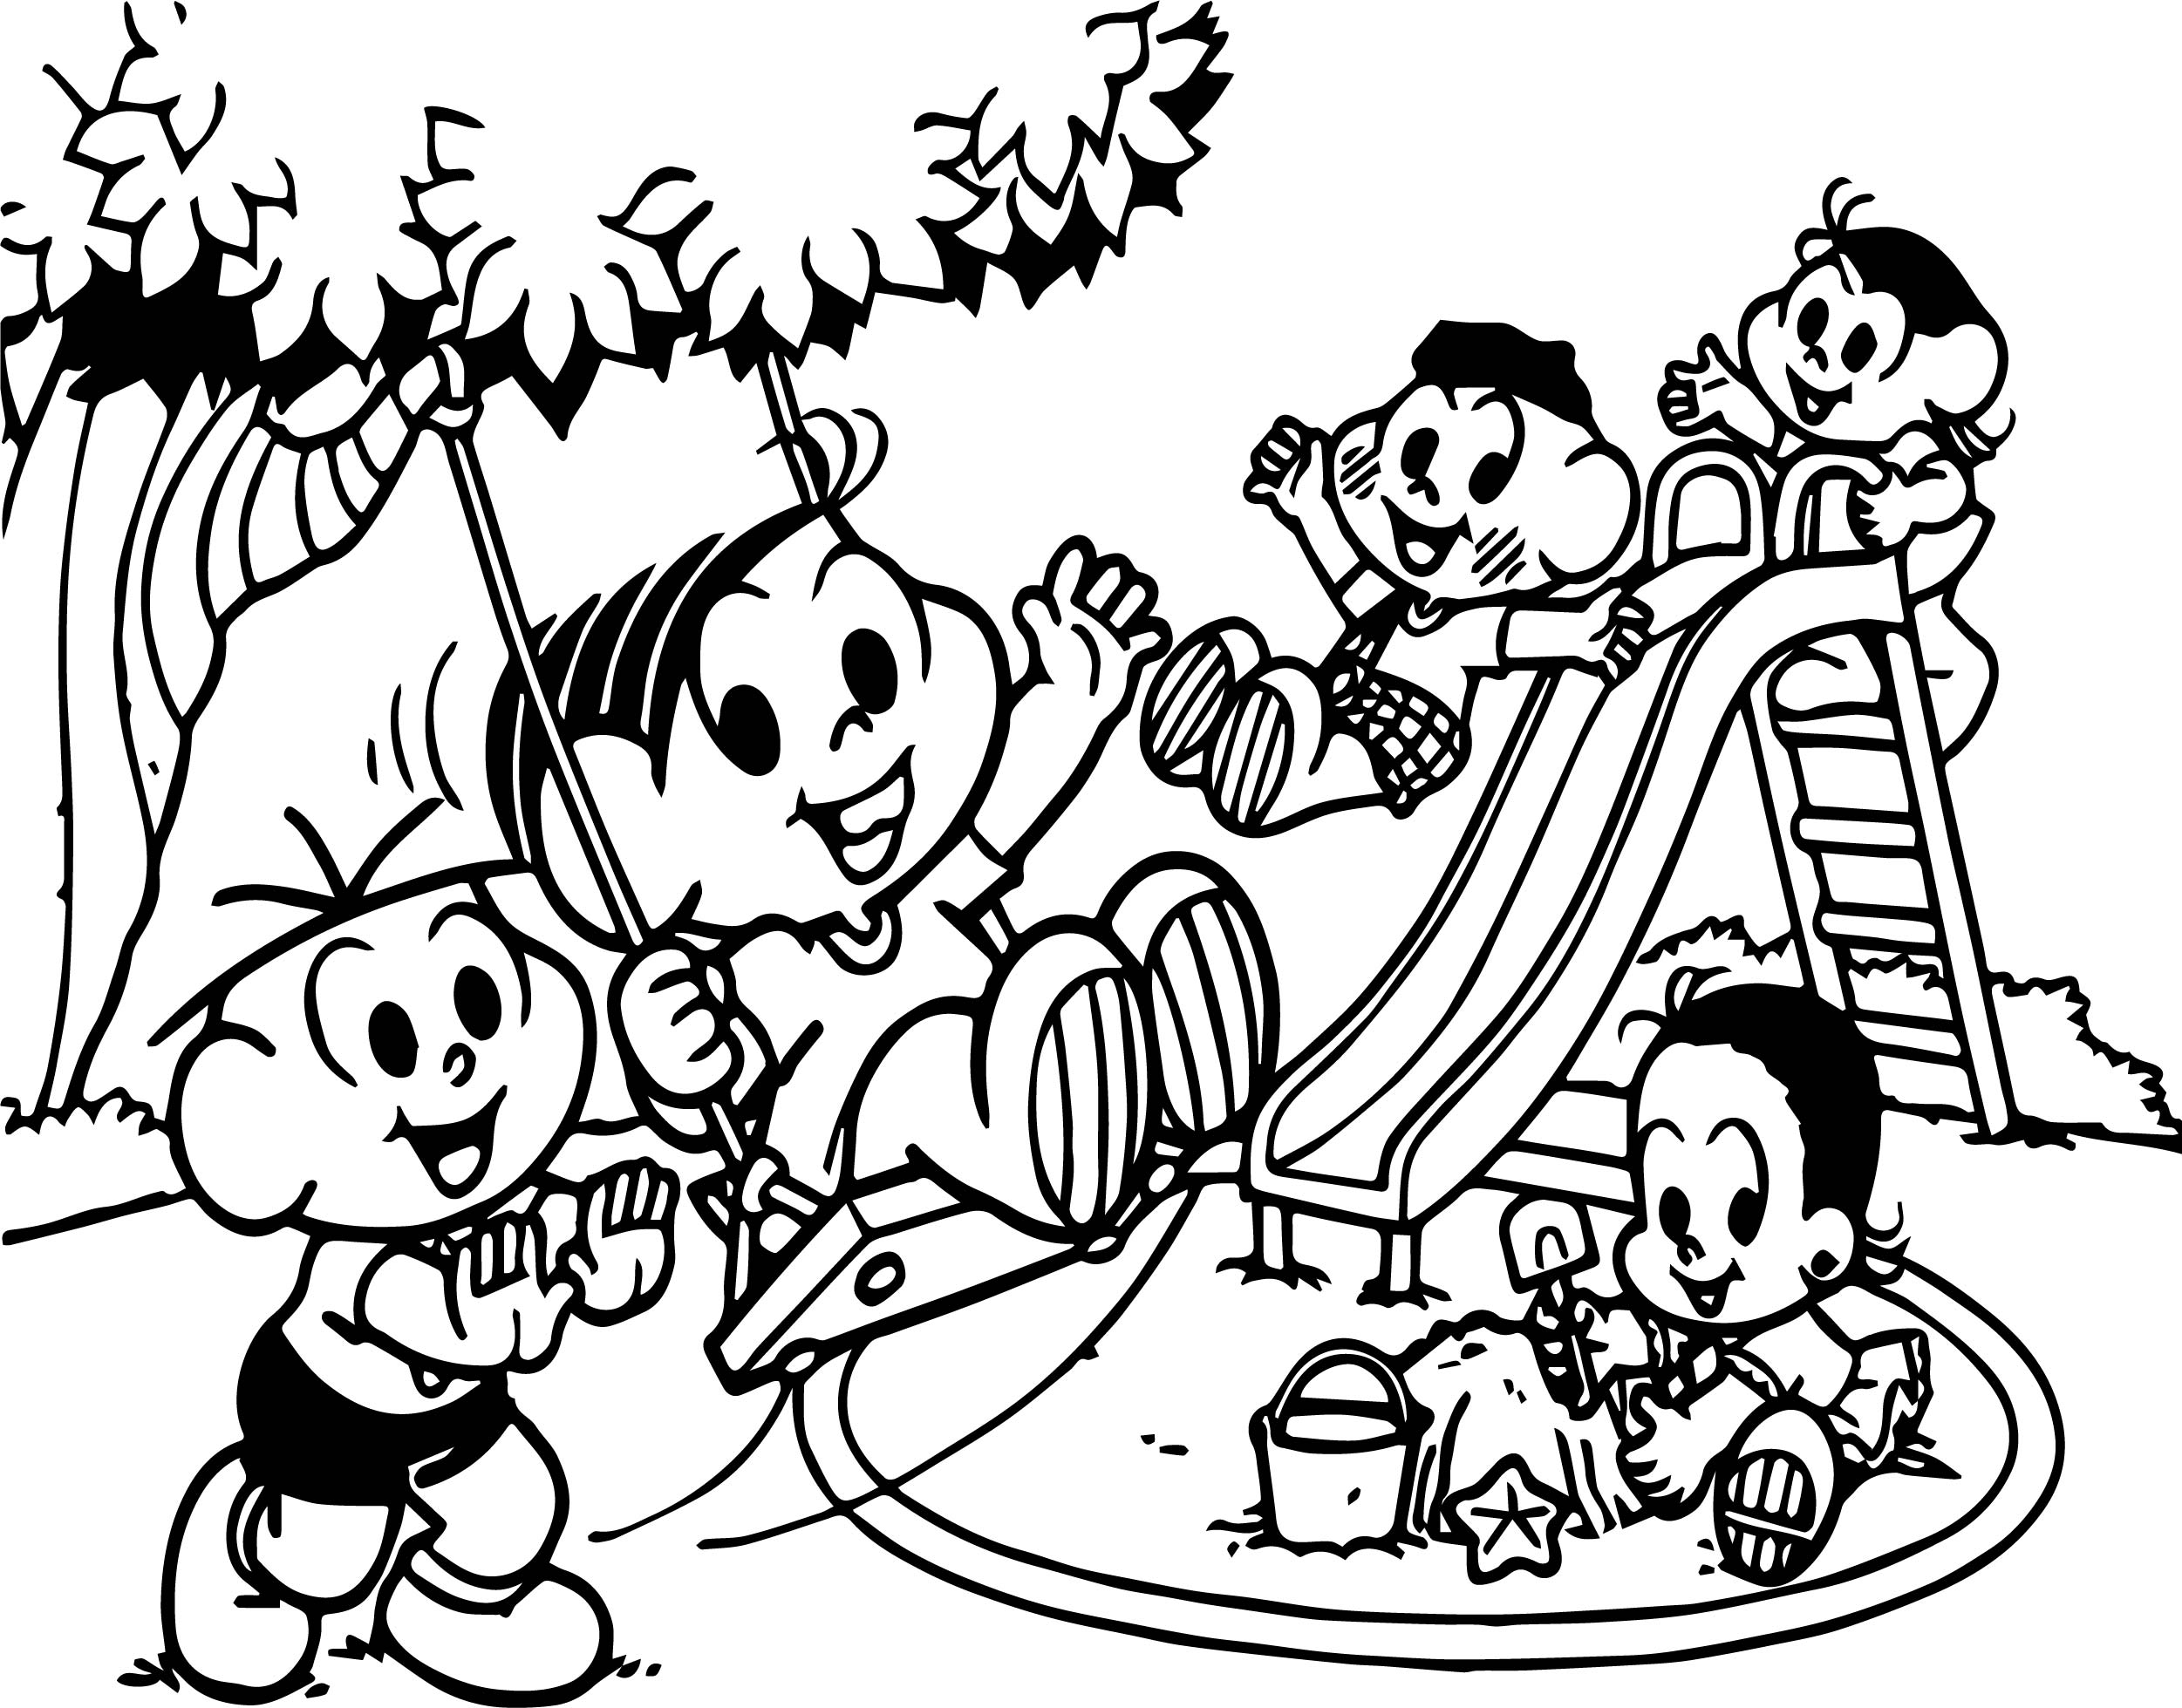 Uncategorized Kids Playing Coloring Pages turma da monica child park playing coloring page wecoloringpage page